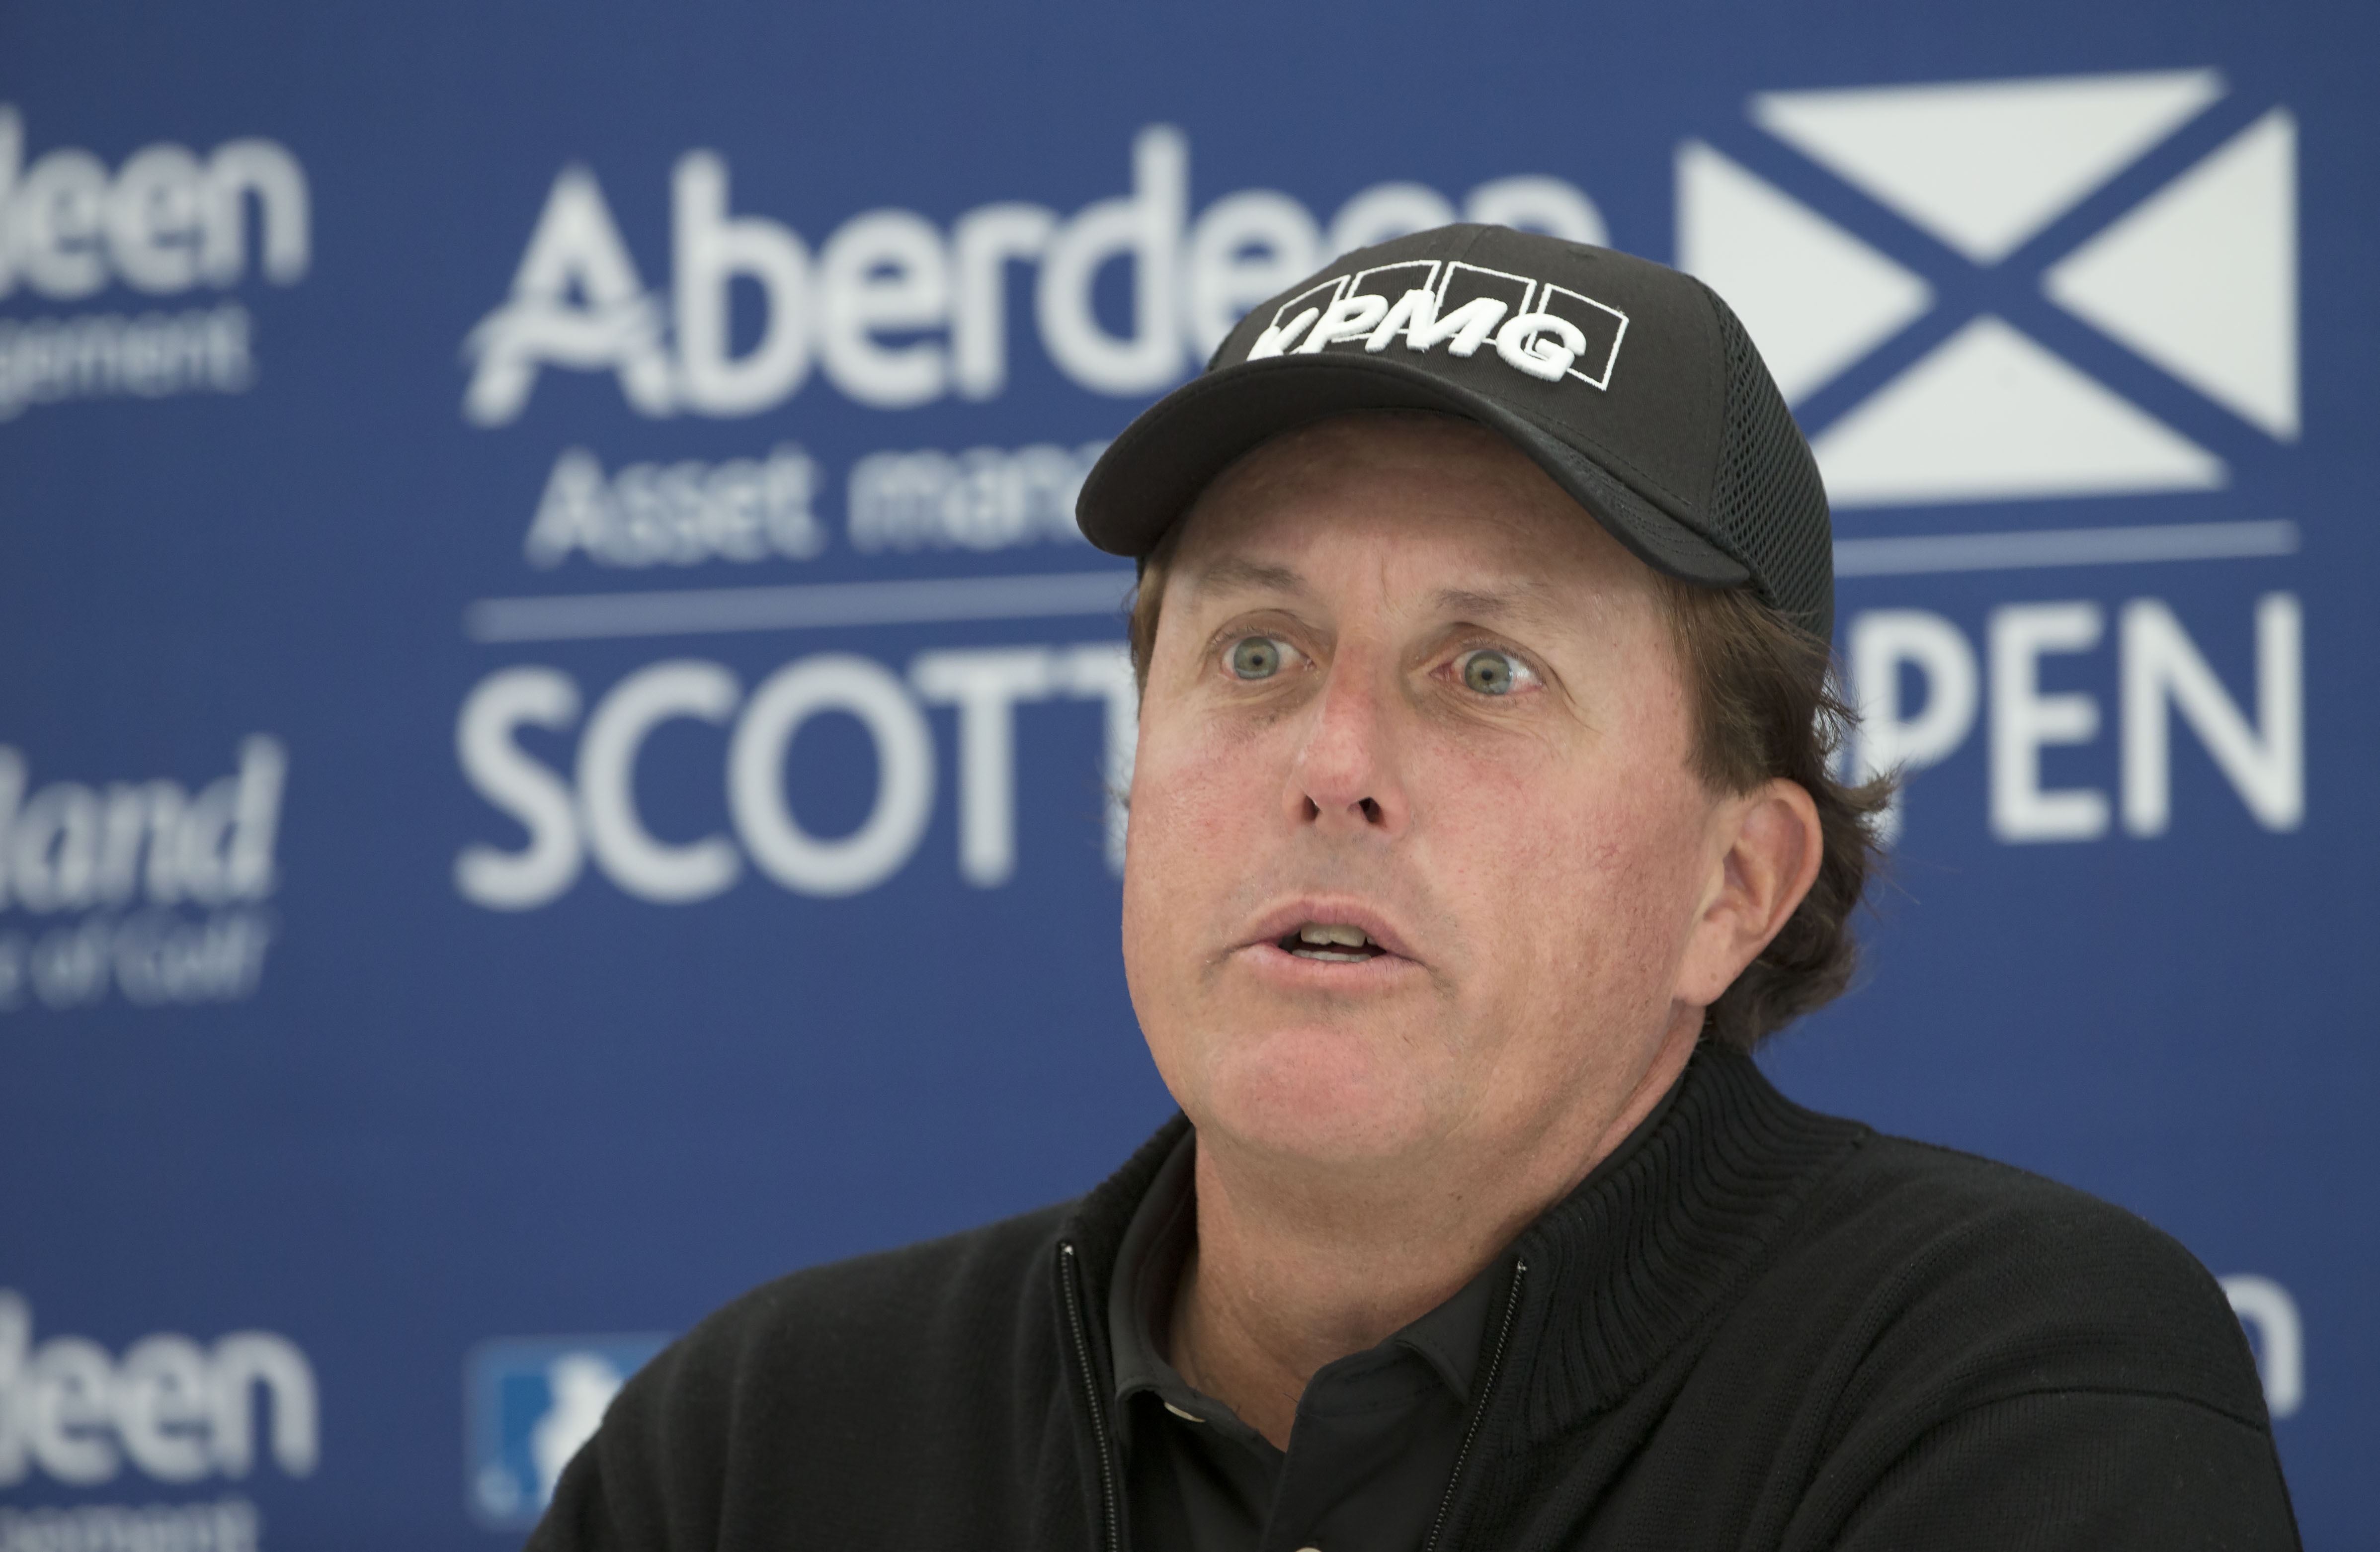 US golfer  Phil Mickelson answers questions from the media during a preview day ahead of the Scottish Open at Gullane Golf Club, Gullane Scotland Wednesday July 8, 2015. Five-time major champion Phil Mickelson has refused to comment on allegations linking